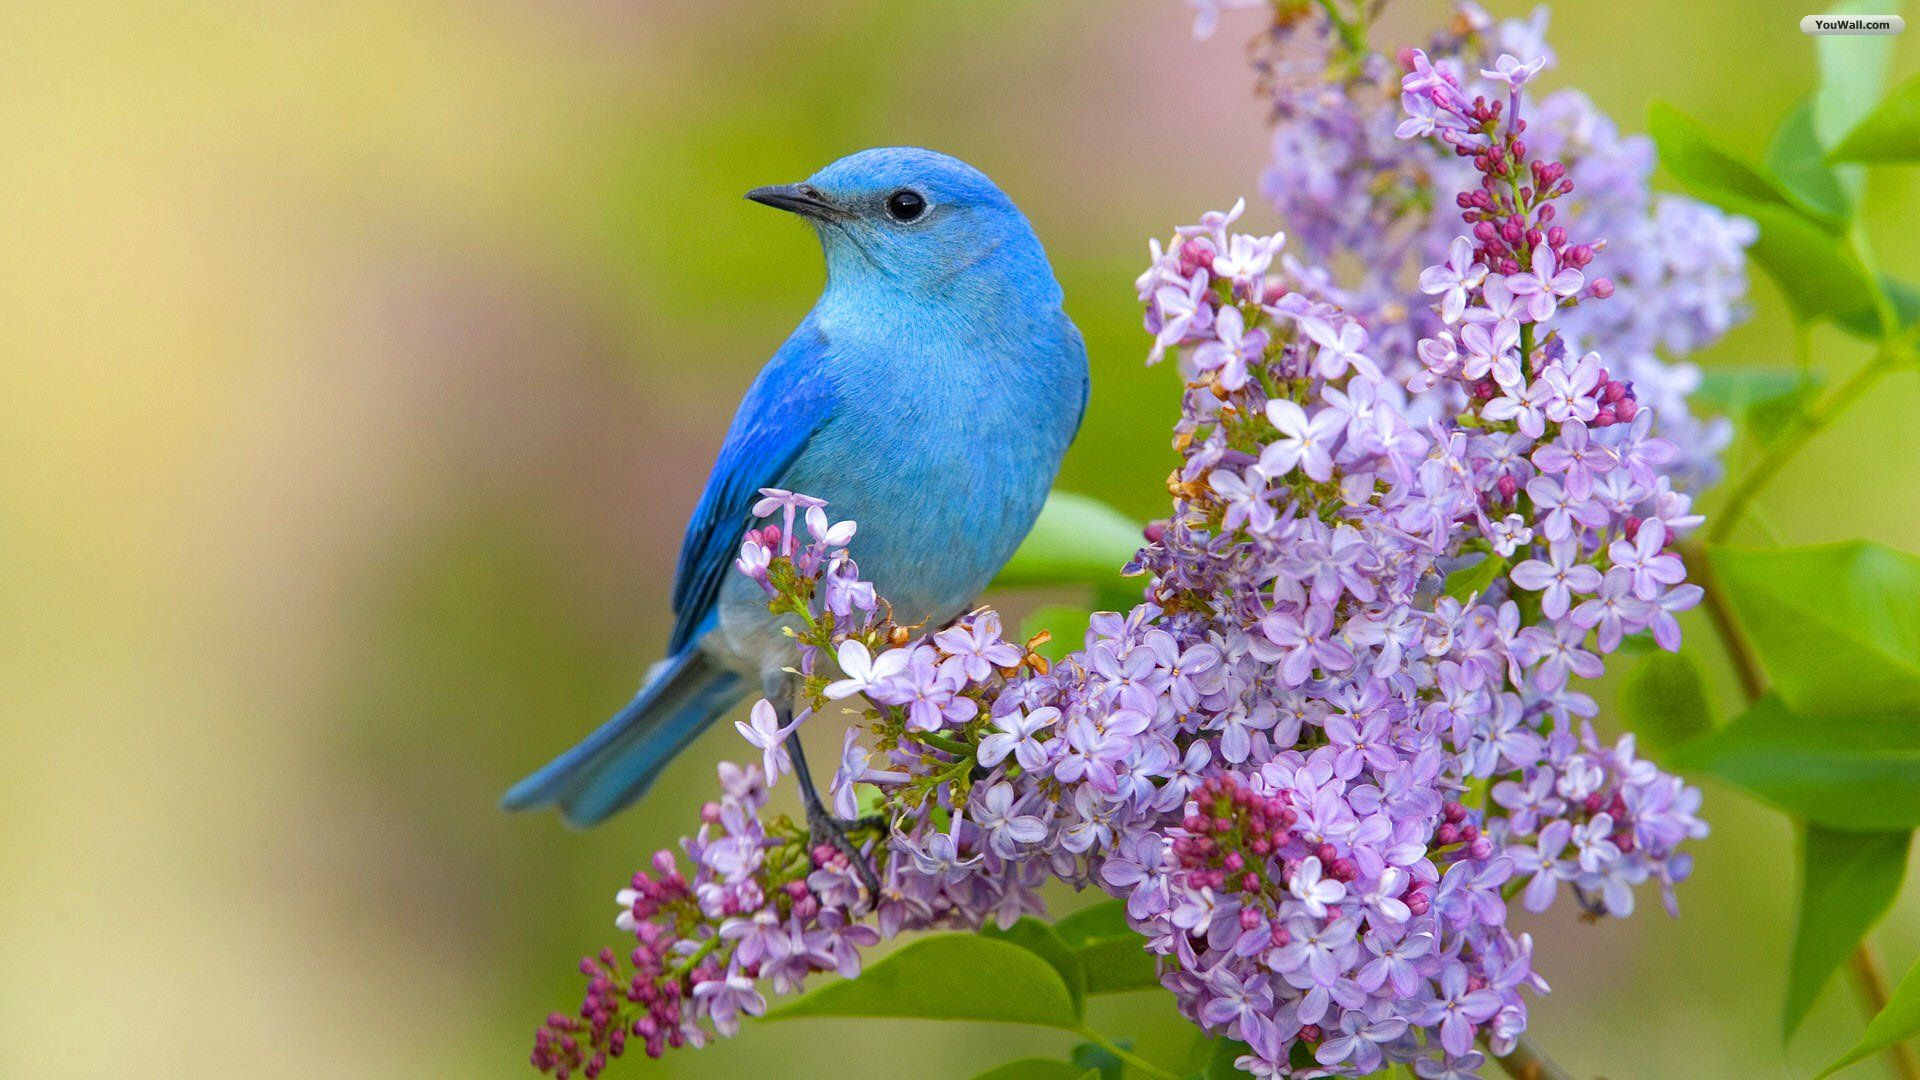 Bird Wallpaper Unique Blue Bird Wallpaper  Birds  Pinterest  Wallpaper And Wallpaper Design Inspiration